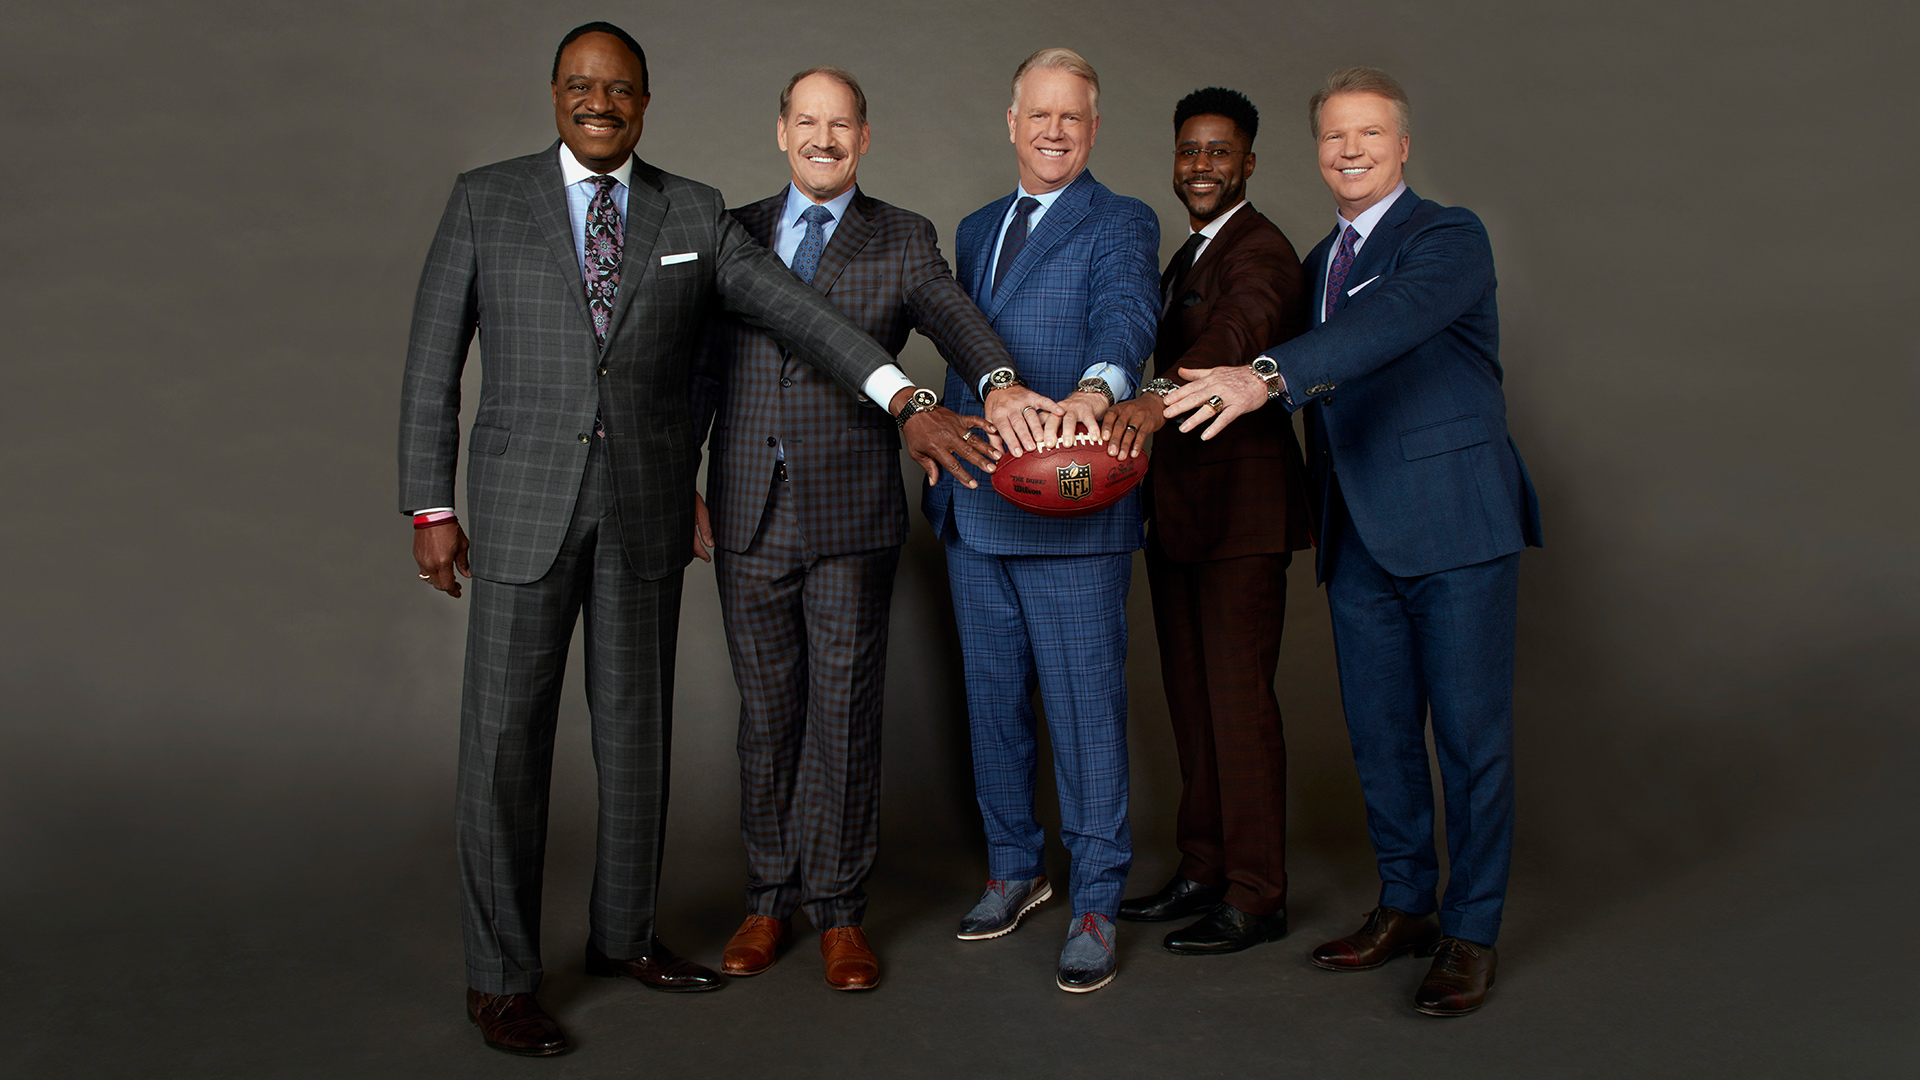 The Nfl Today Teammates Are Changing The Game And Making Football Fun Watch Magazine Photos Cbs Com